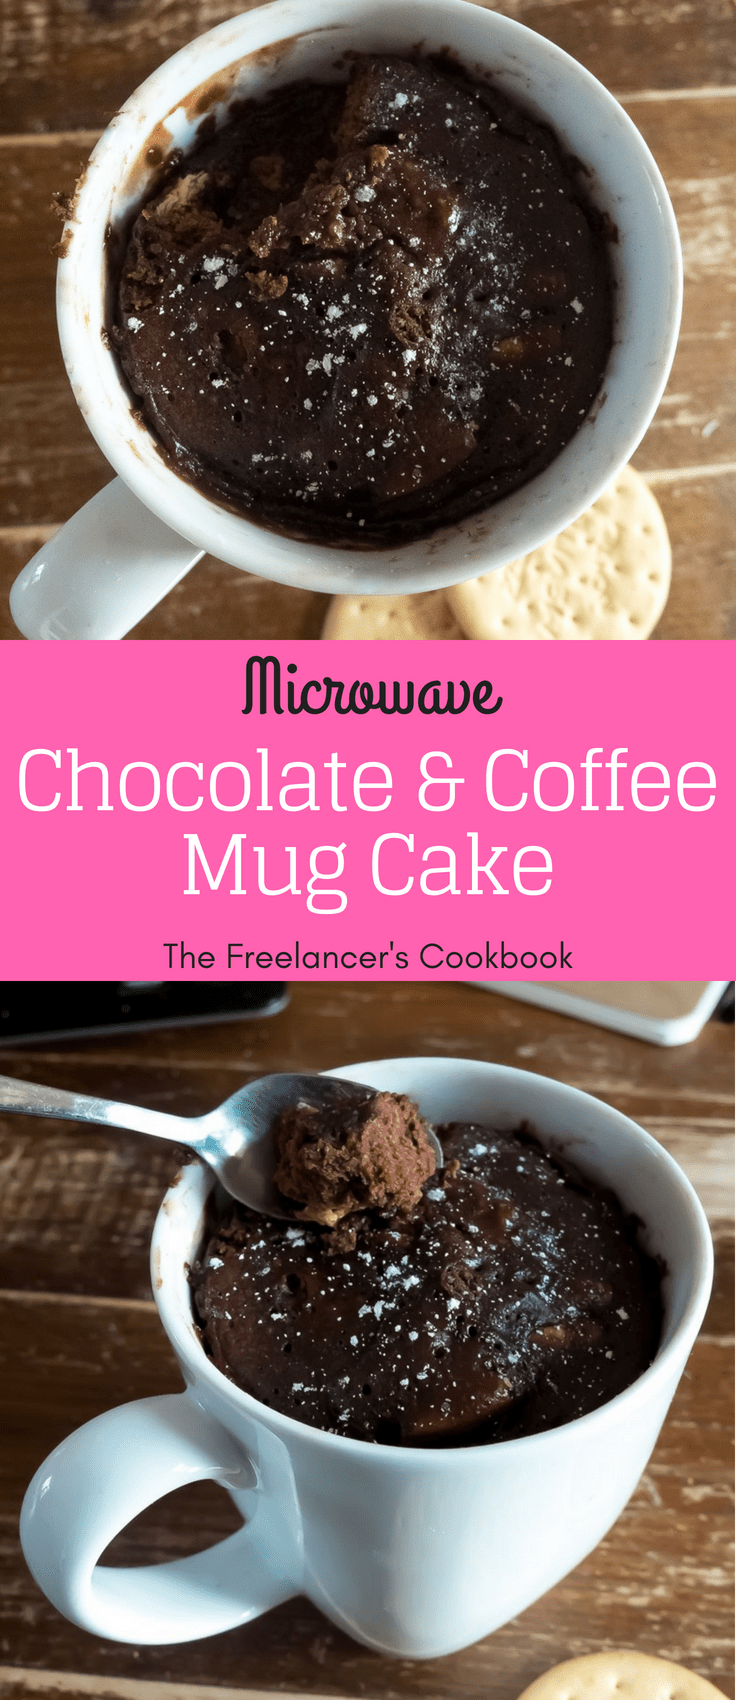 Microwave chocolate & coffee mug cake Coffe mug cake